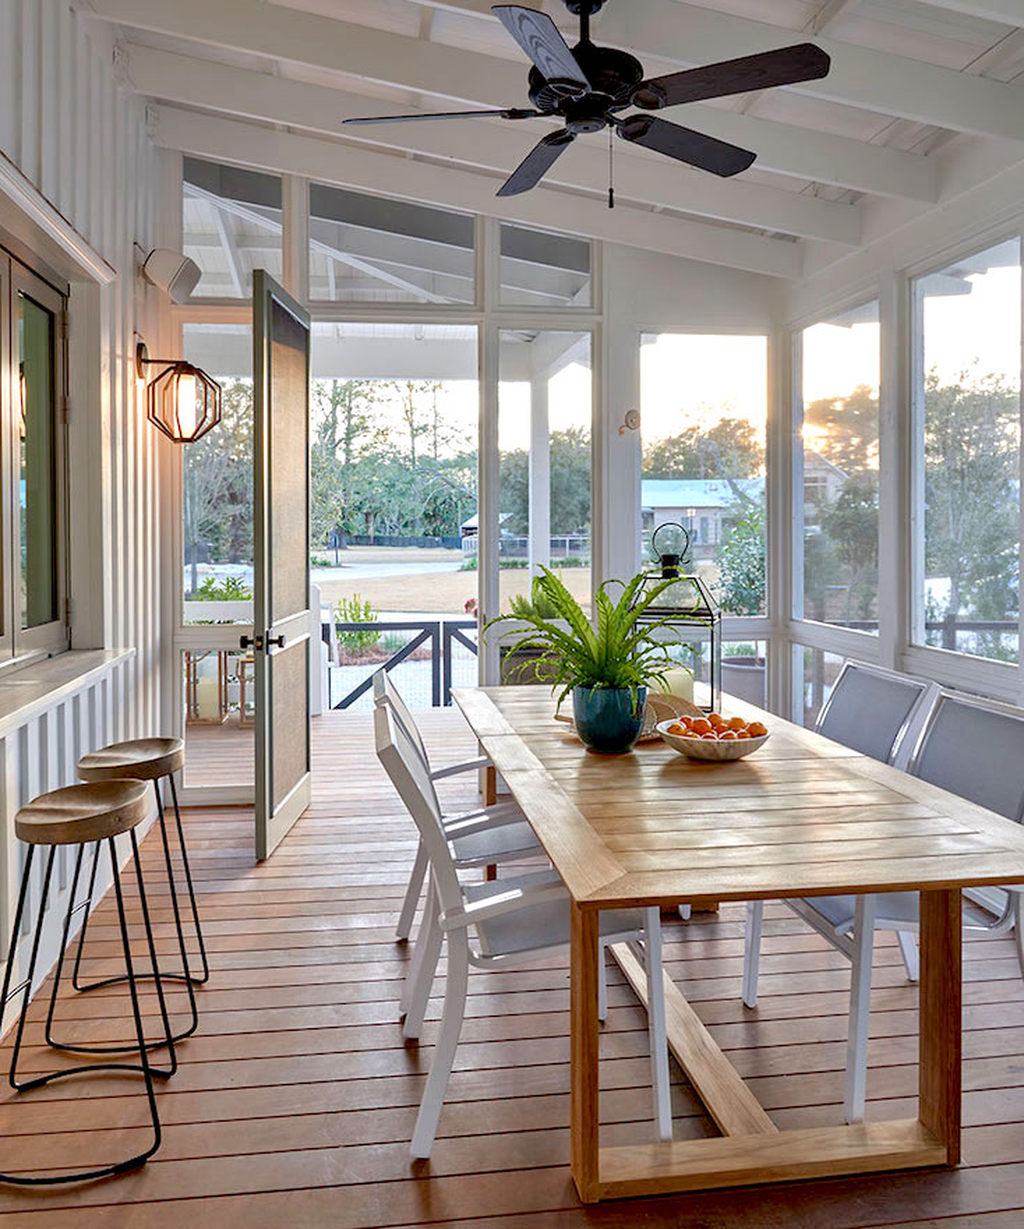 Admirable Sunroom Design Ideas You Must Have 28